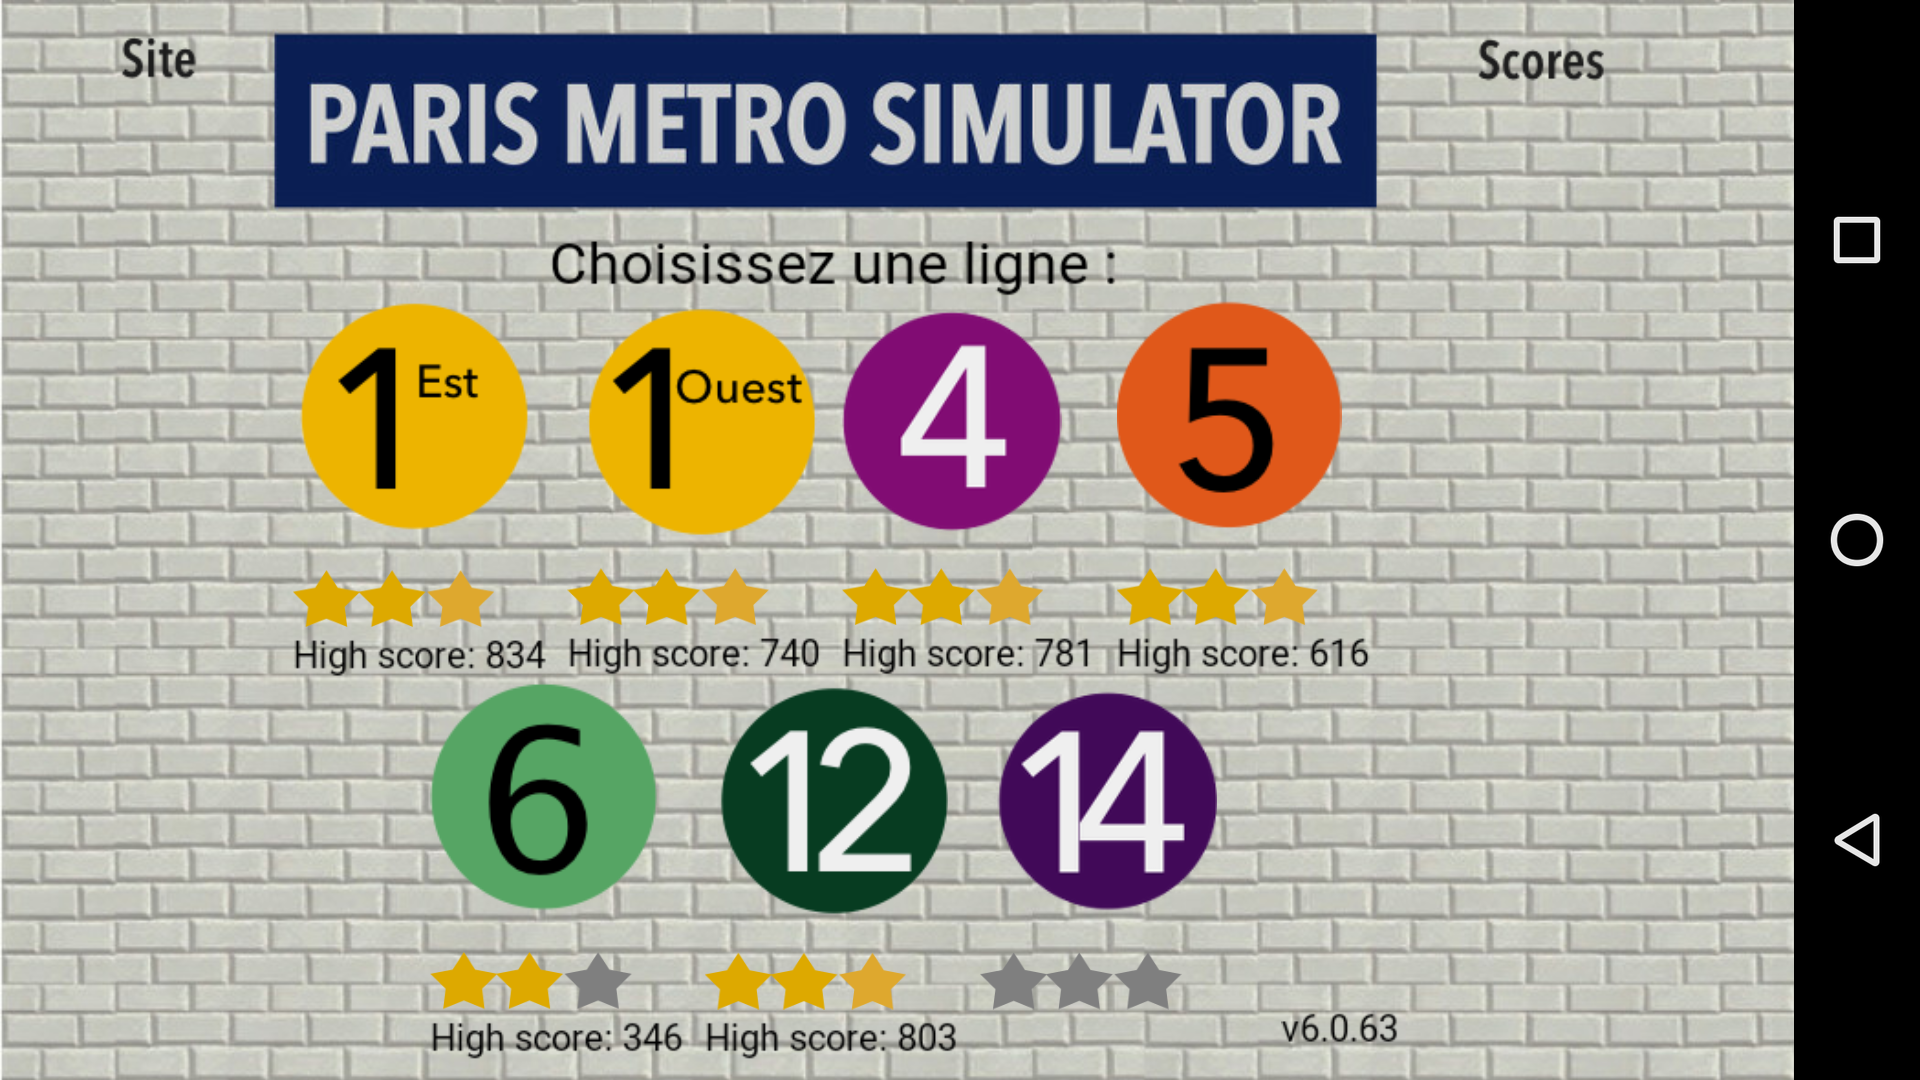 Mantalow: Paris Metro Simulator [Line 1 West] (Android) 740 points on 2015-12-11 02:08:30